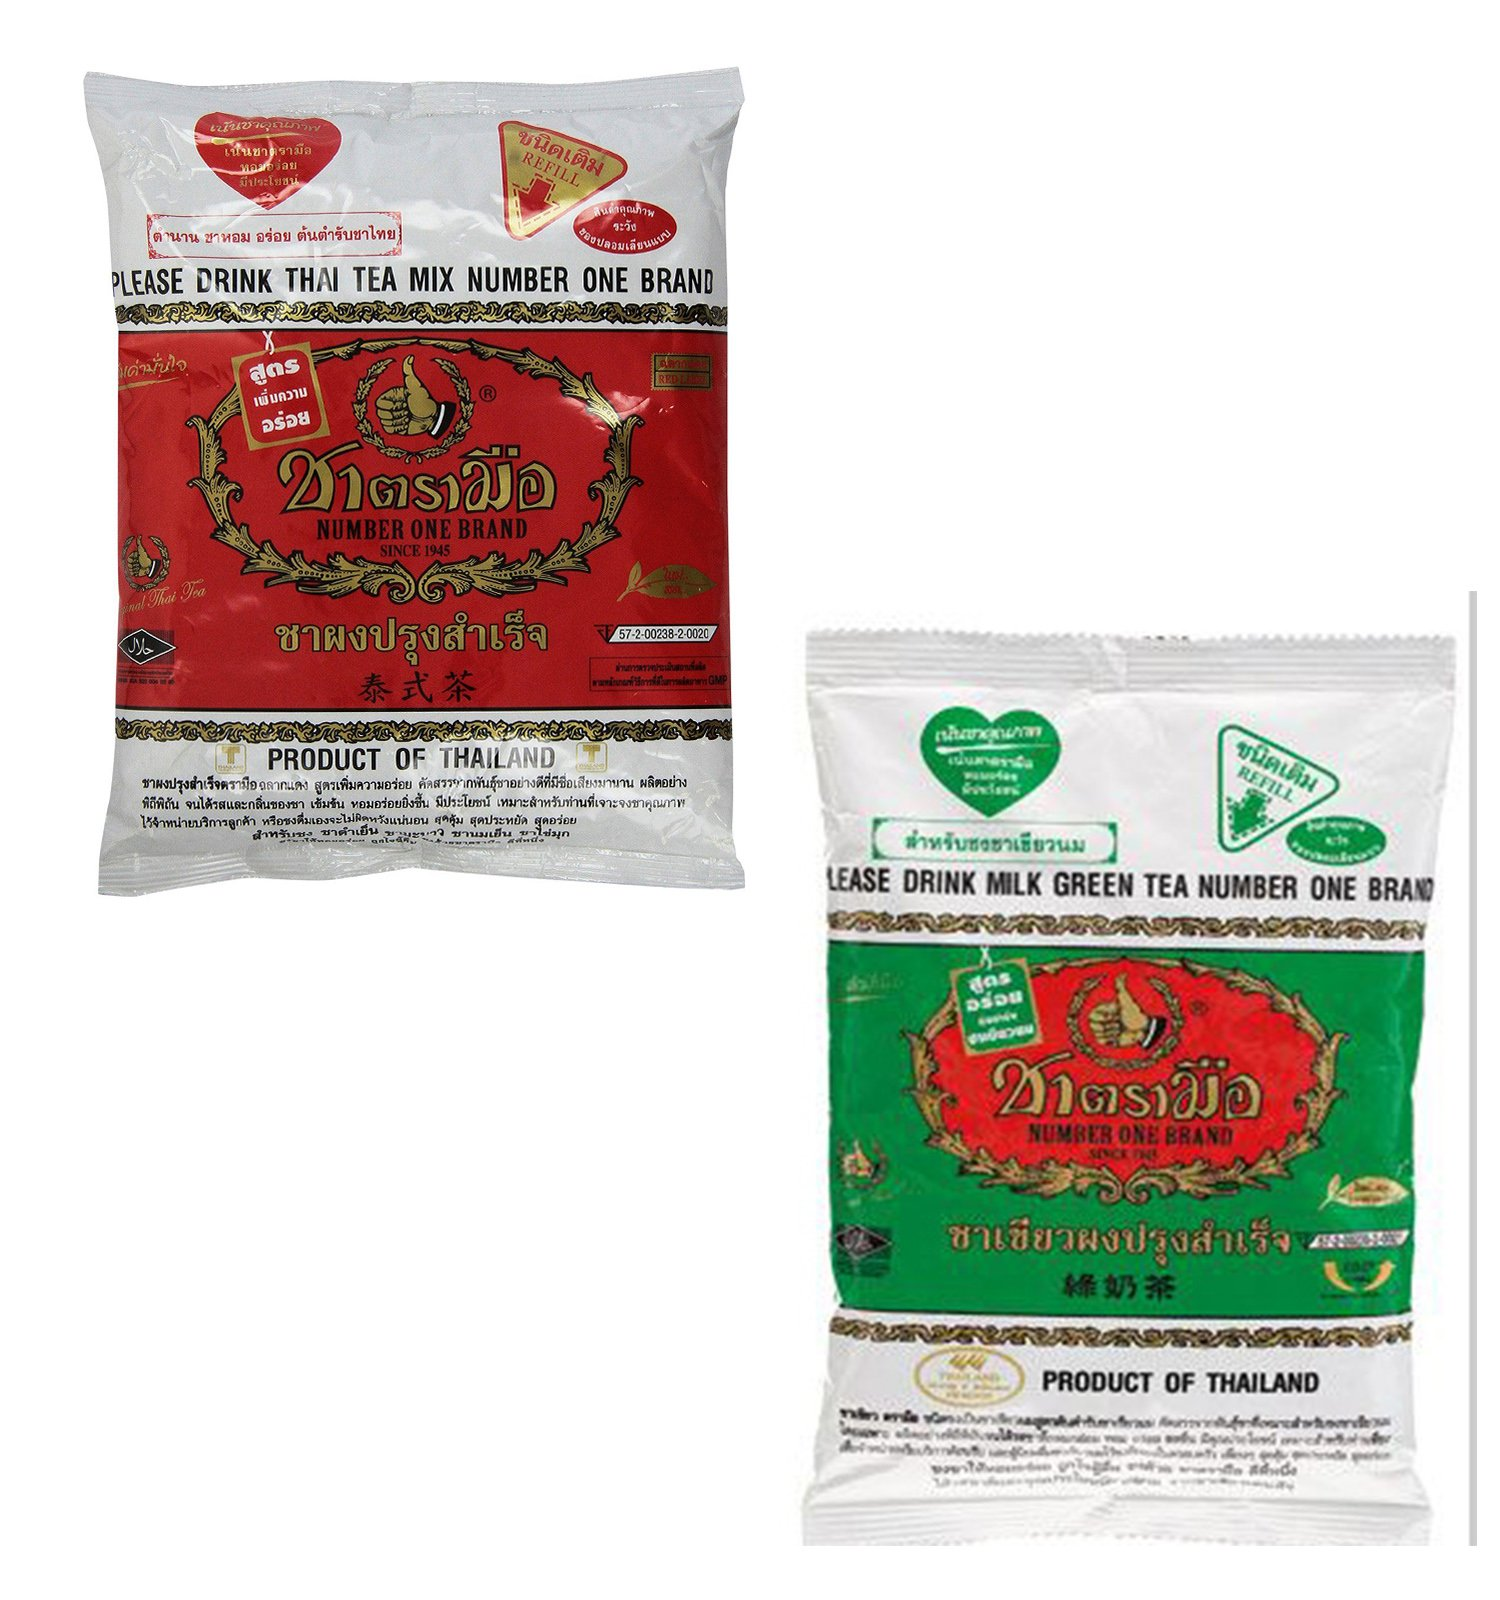 10 Bag/lots - The Original Thai Iced Tea Mix ~ Number One Brand Imported From Thailand! 400g Bag Great for Restaurants That Want to Serve Authentic and High Quality Thai Iced Teas. Sent with EMS